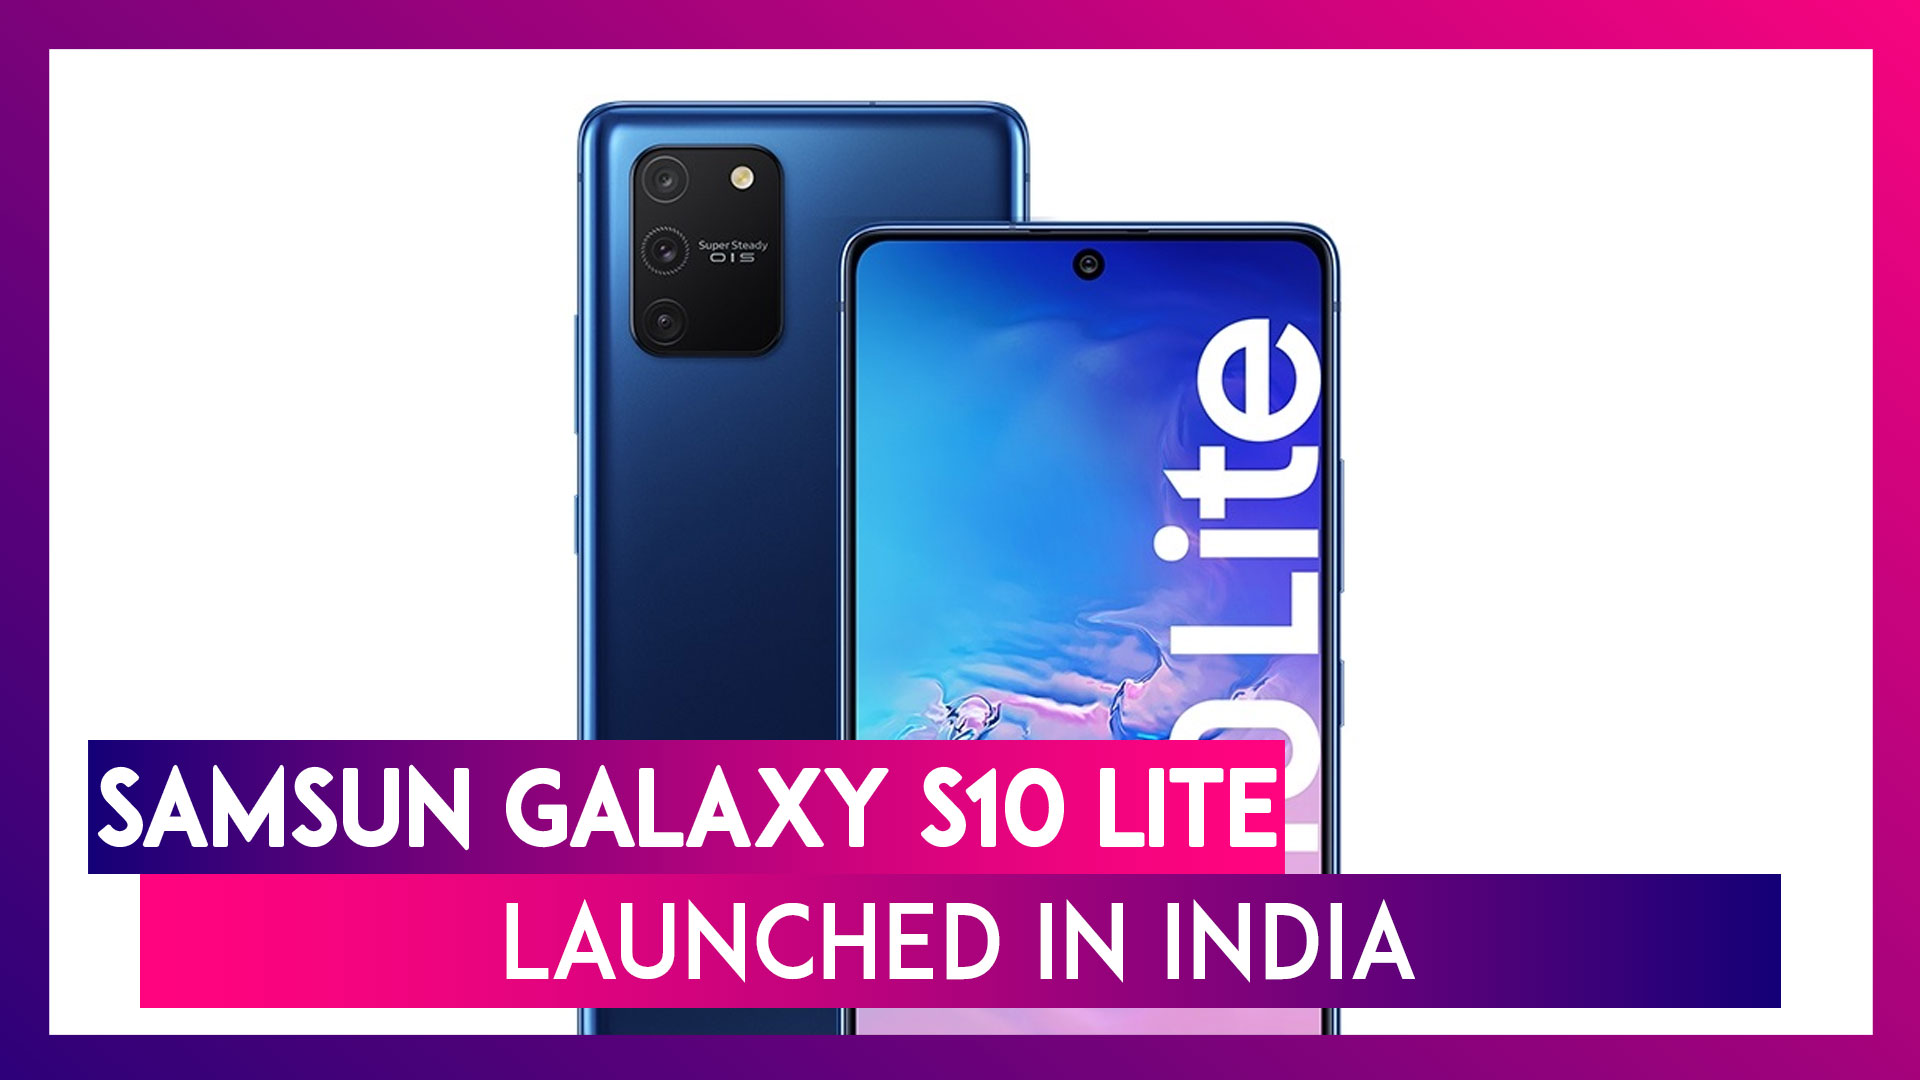 Samsung Galaxy S10 Lite Featuring Super Steady OIS Cameras Launched in India; Price, Variants, Features & Specifications